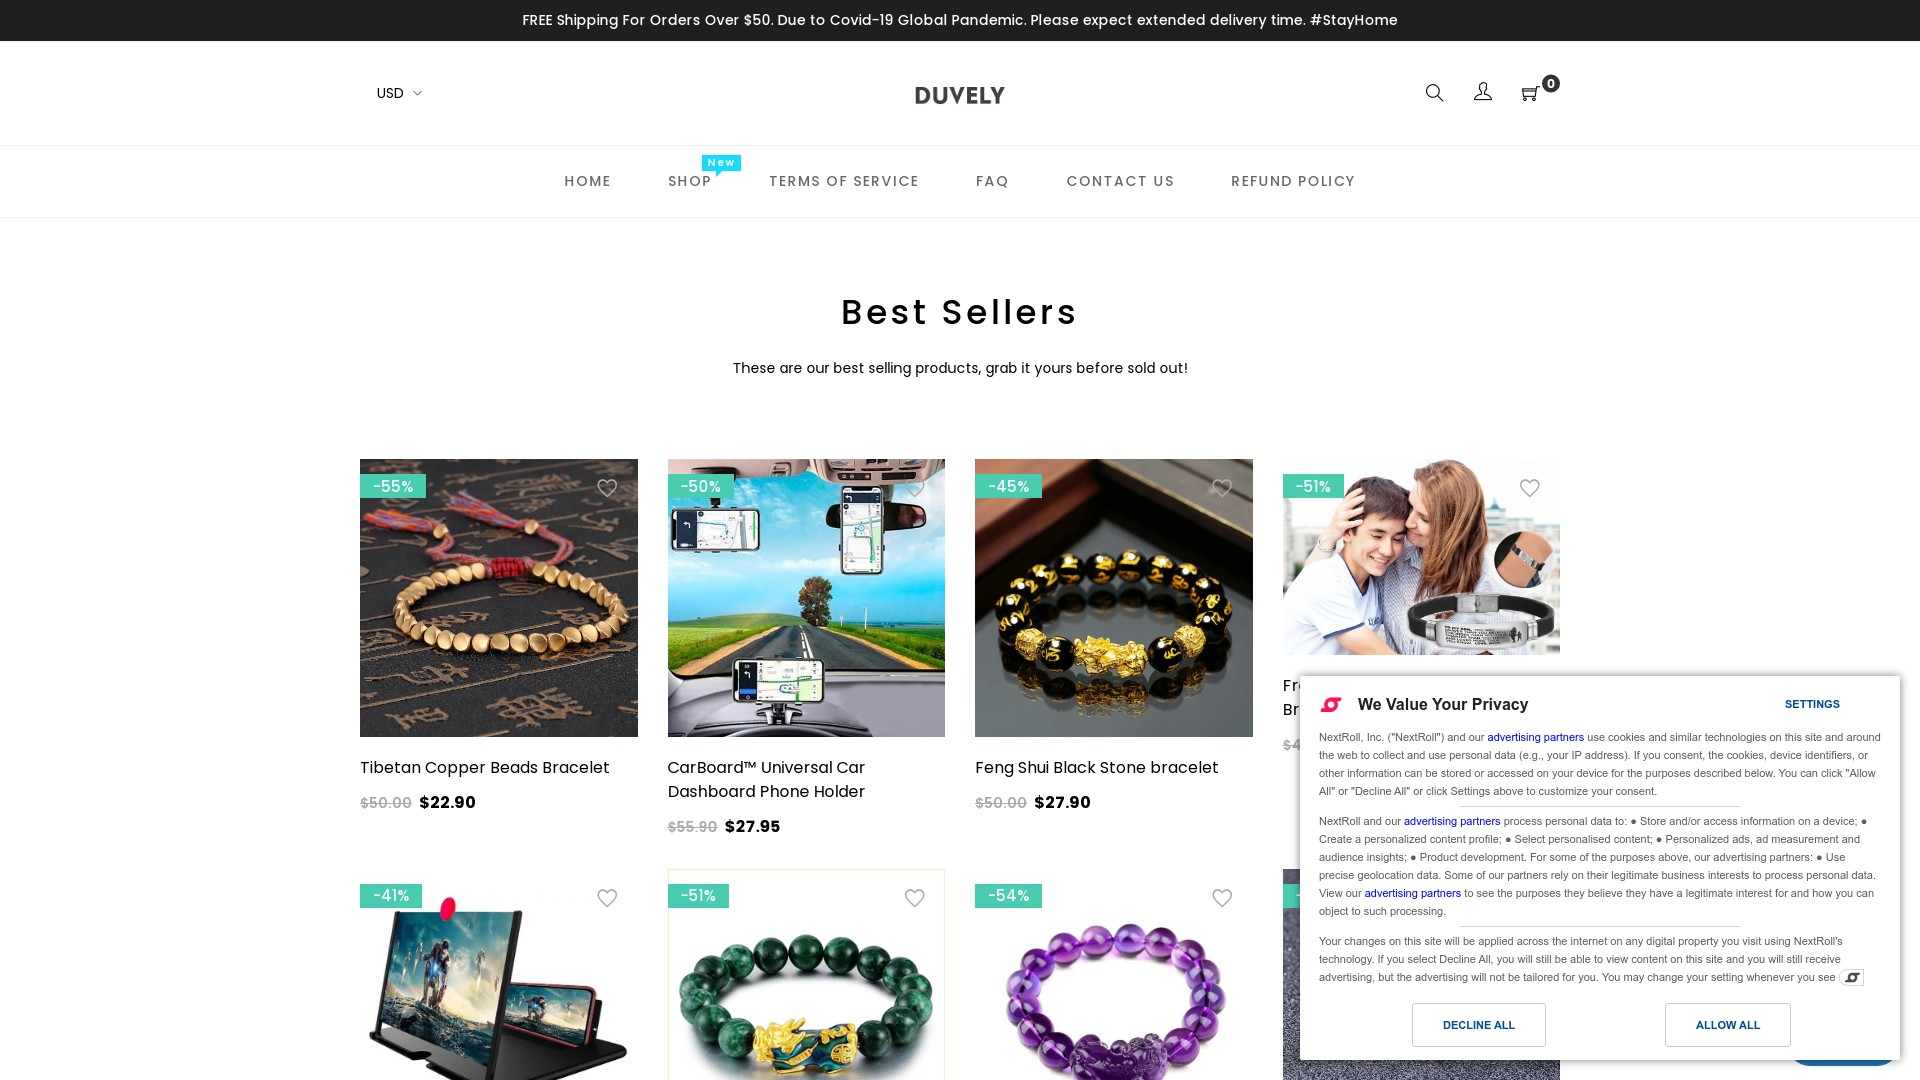 Is Duvely a Scam? Review of the Online Store